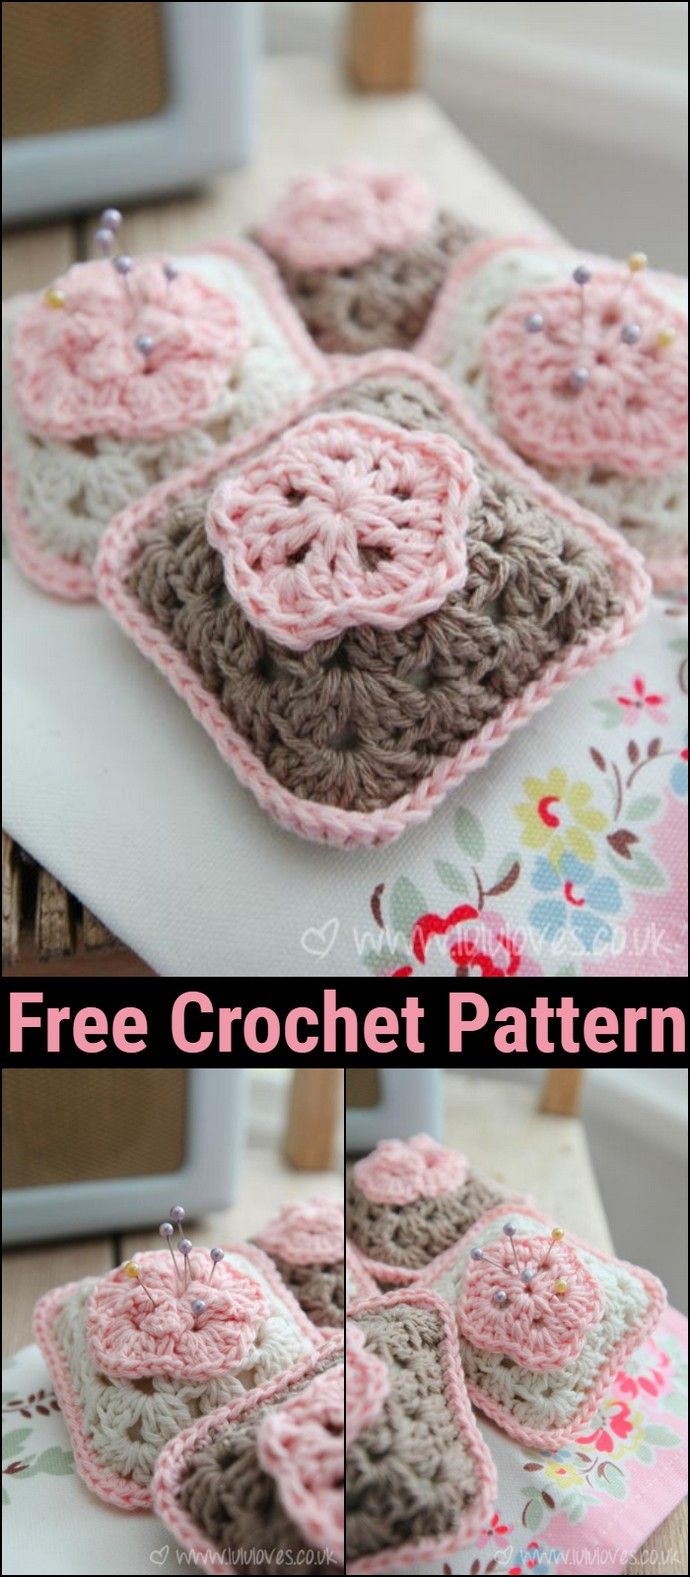 Crochet Pattern Granny Square Pincushion